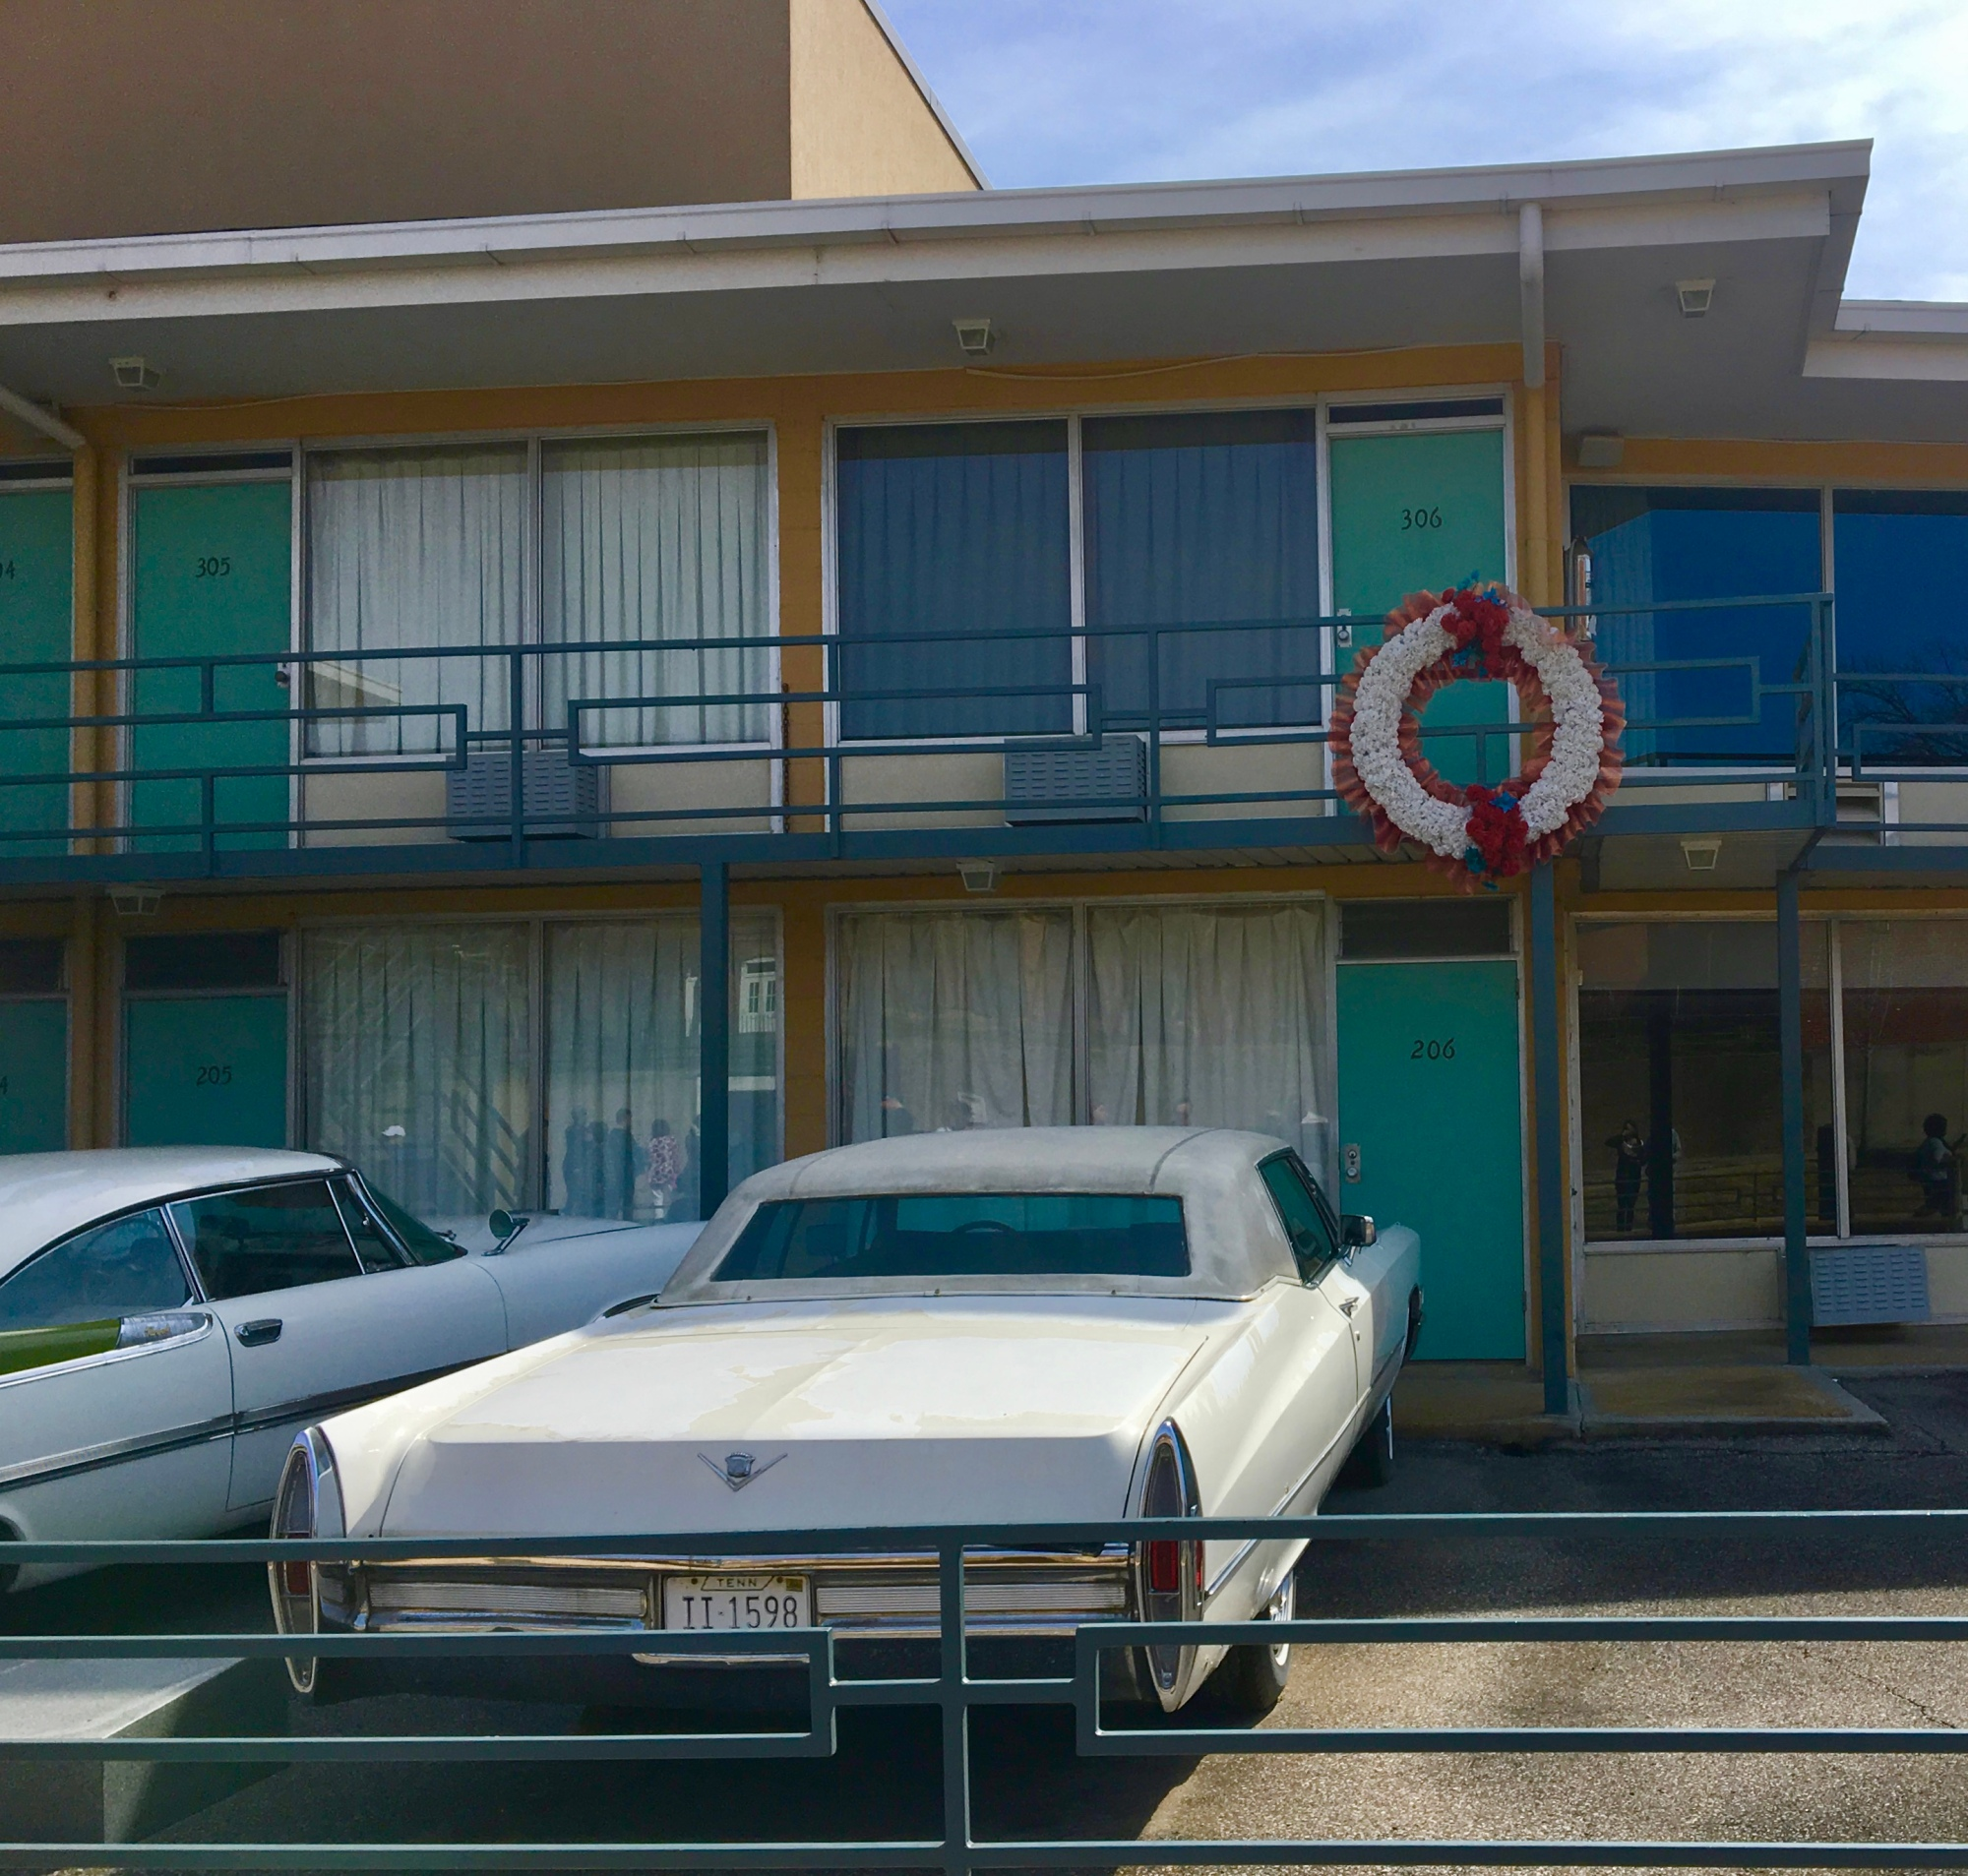 image of the Lorraine Hotel at Dr. Martin Luther King, Jr. museum